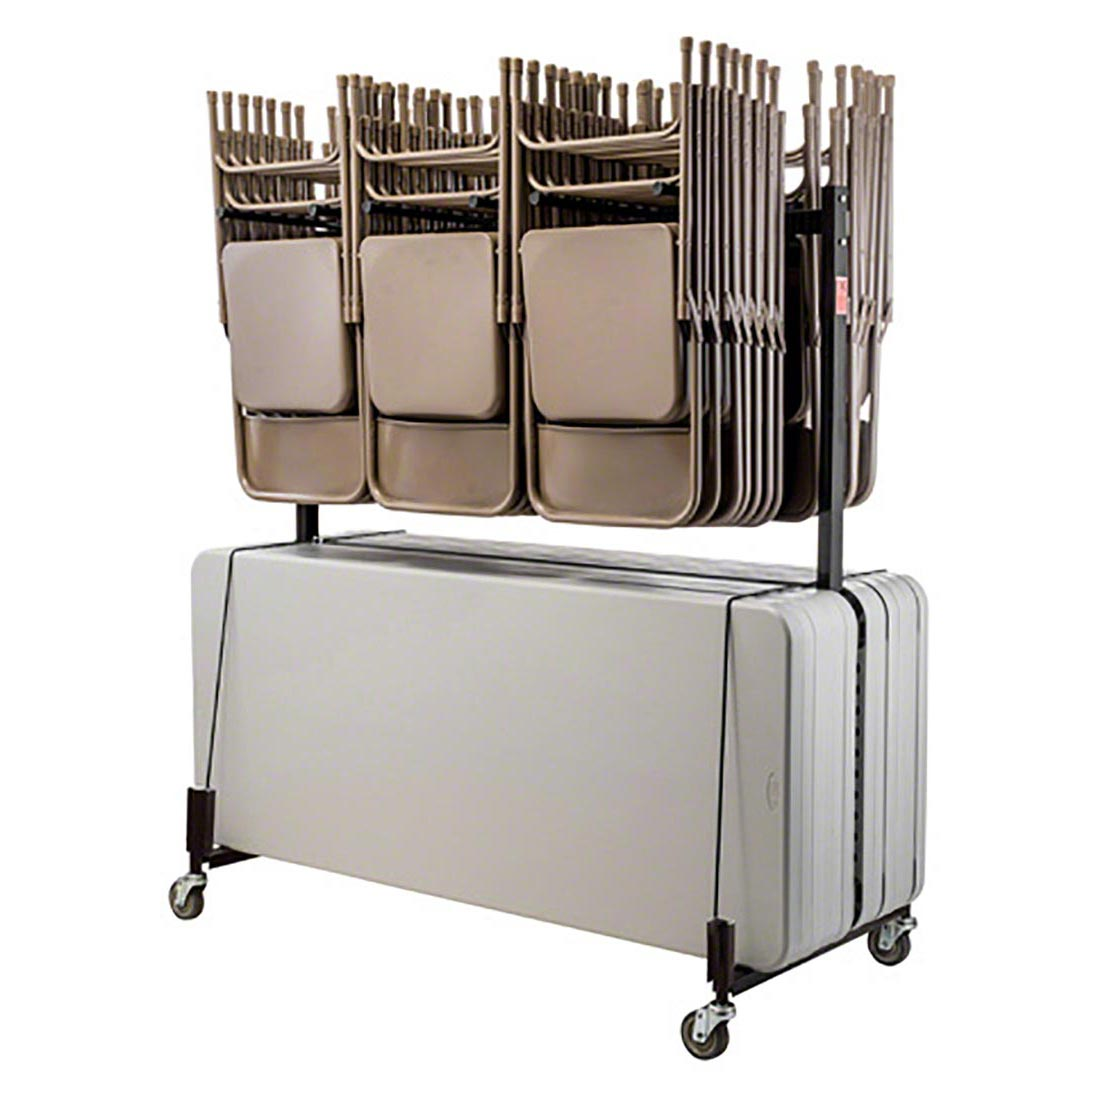 Folding Chair Storage National Public Seating 42 8 Combination Folding Chair